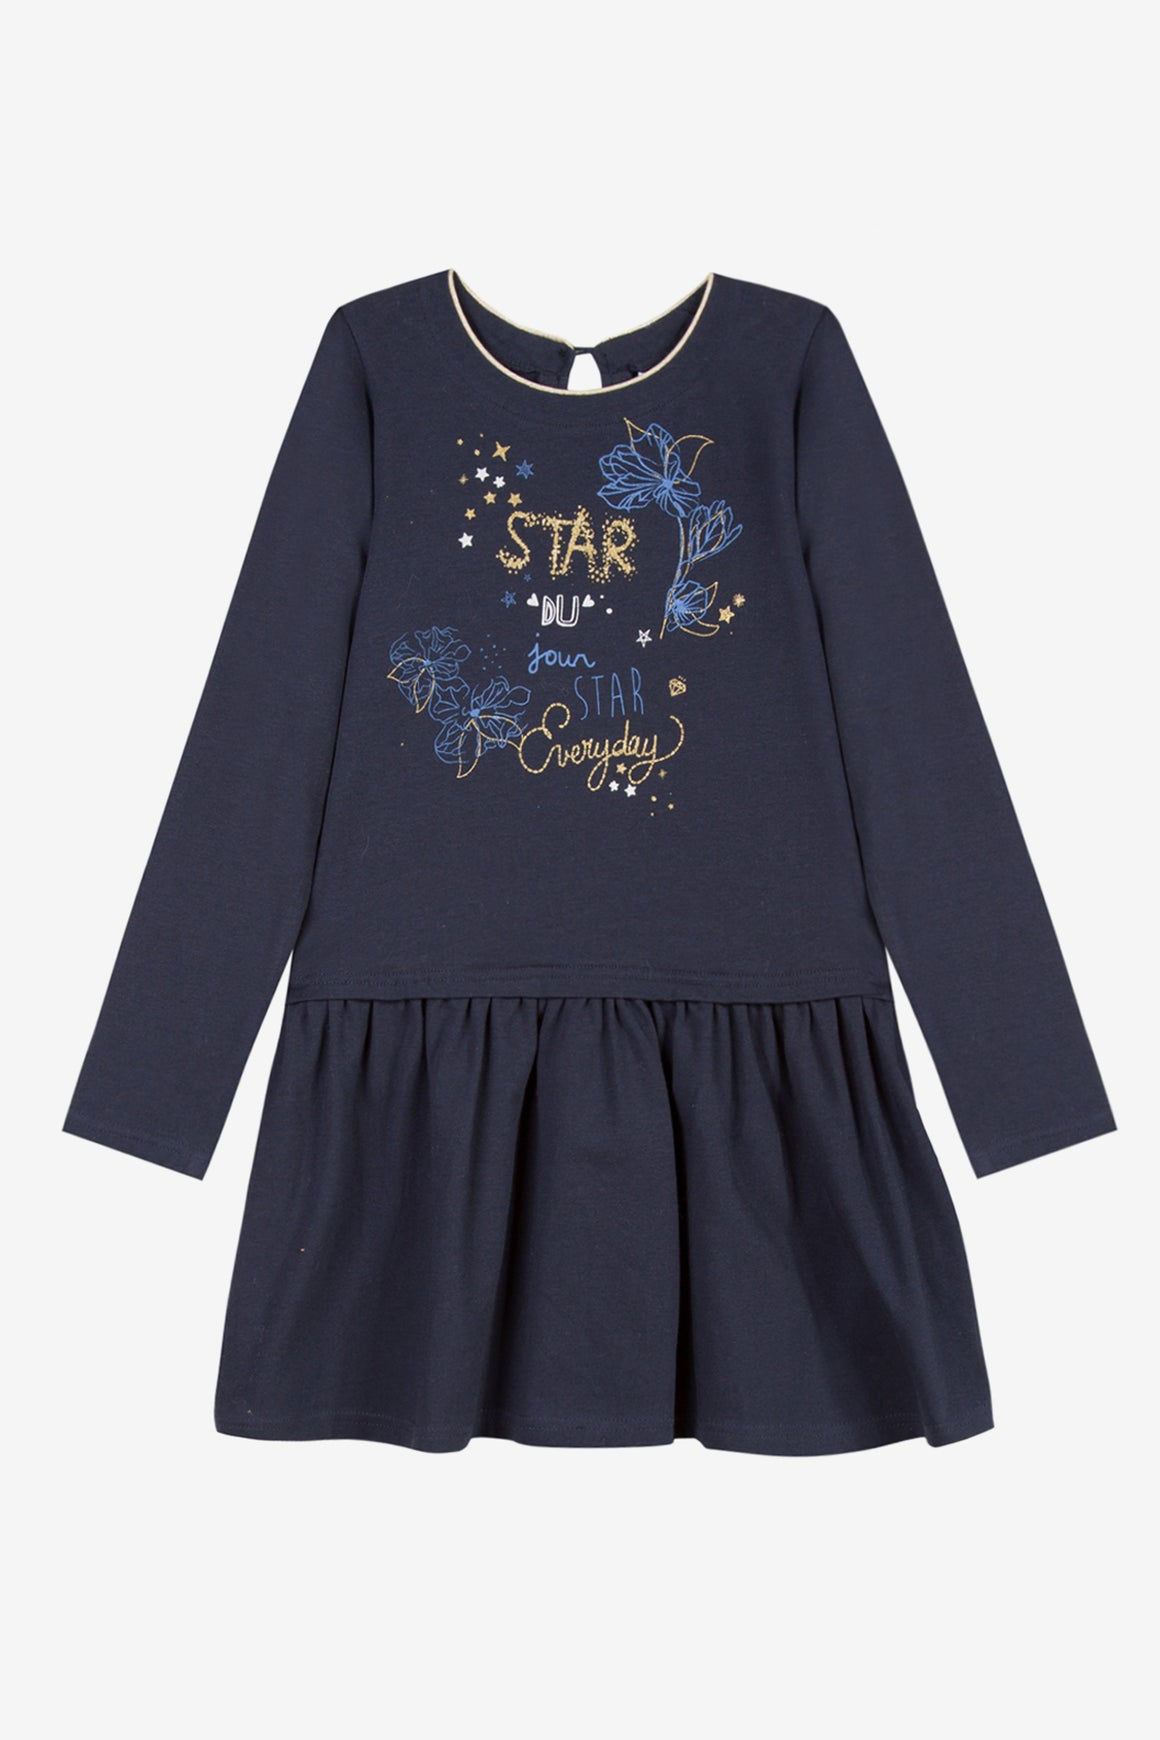 af1d32dc18e15 3pommes Navy Star Dress. 3pommes Navy Star Dress   48.00. 3pommes Night  Forest Girls Coat